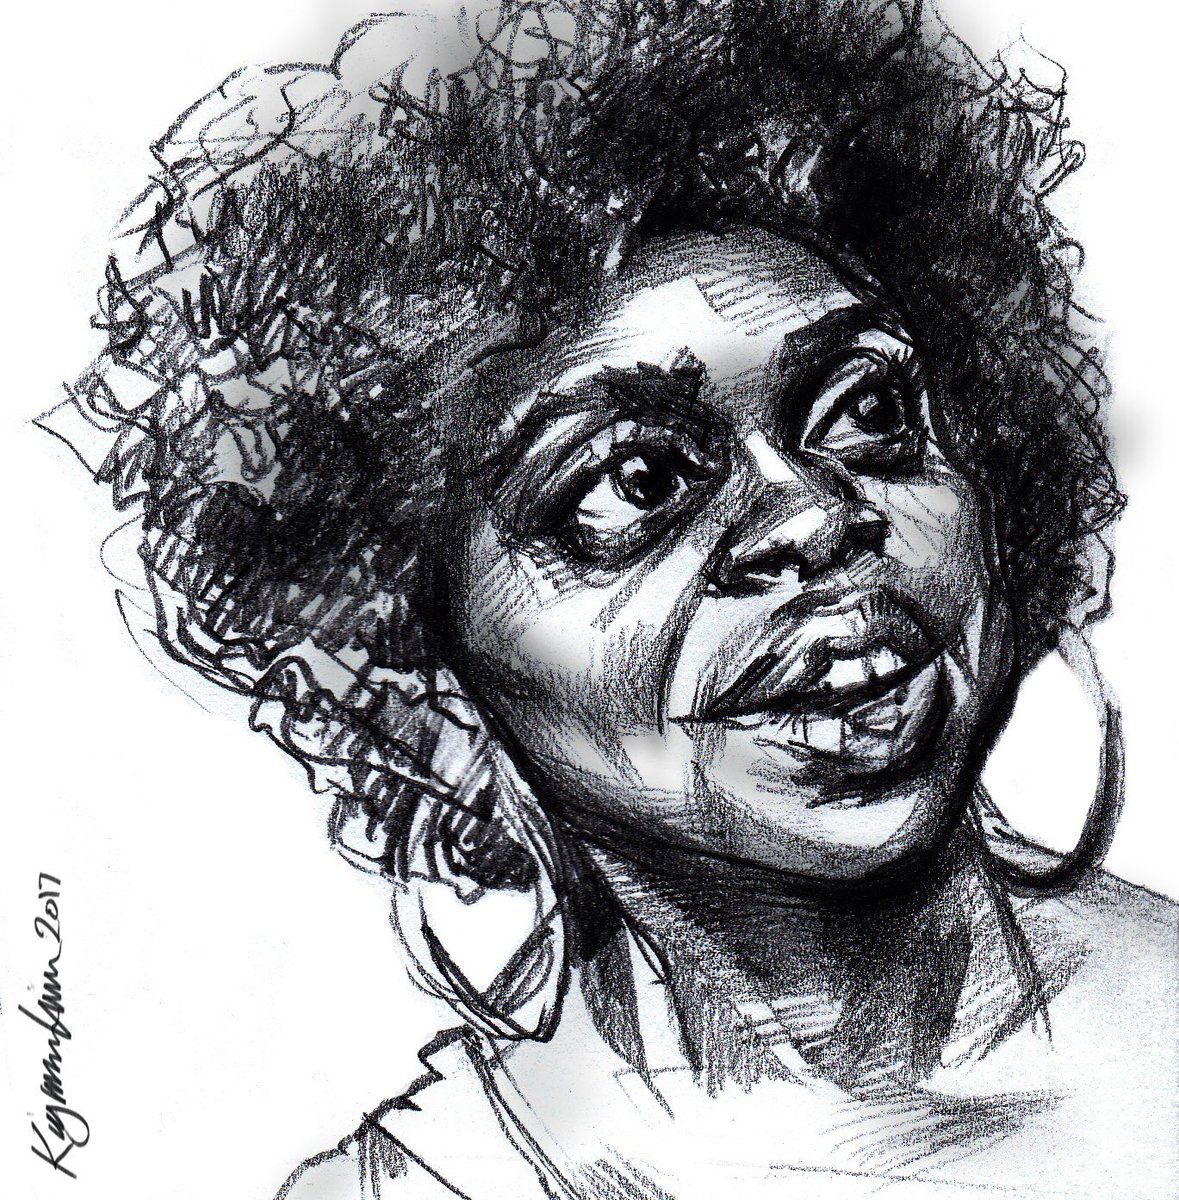 Buzzfeed's Quinta Brunson. Intended as an Inktober entry...better served as a pencil study. @quintabrunson #caricature #sketchbook #buzzfeed <br>http://pic.twitter.com/wYSEy4XYc3